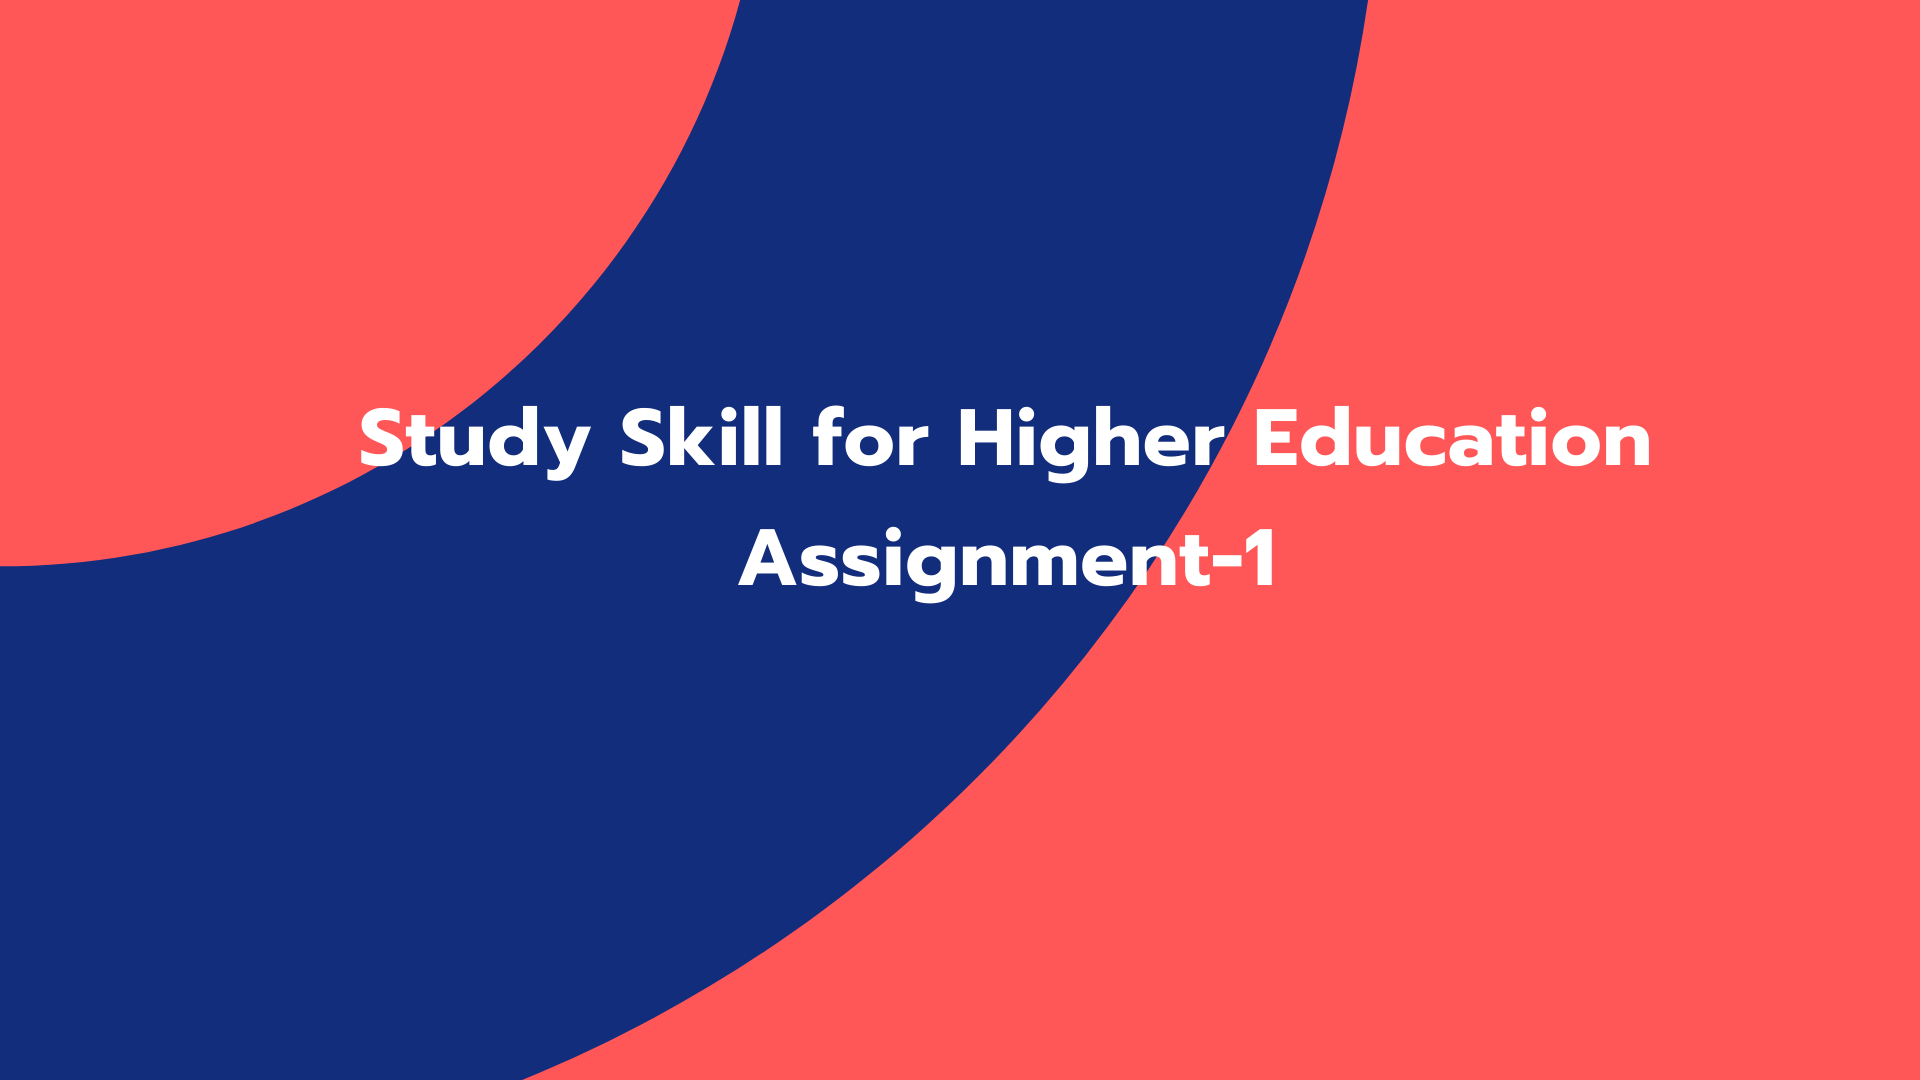 Study Skill for Higher Education Assignment-1